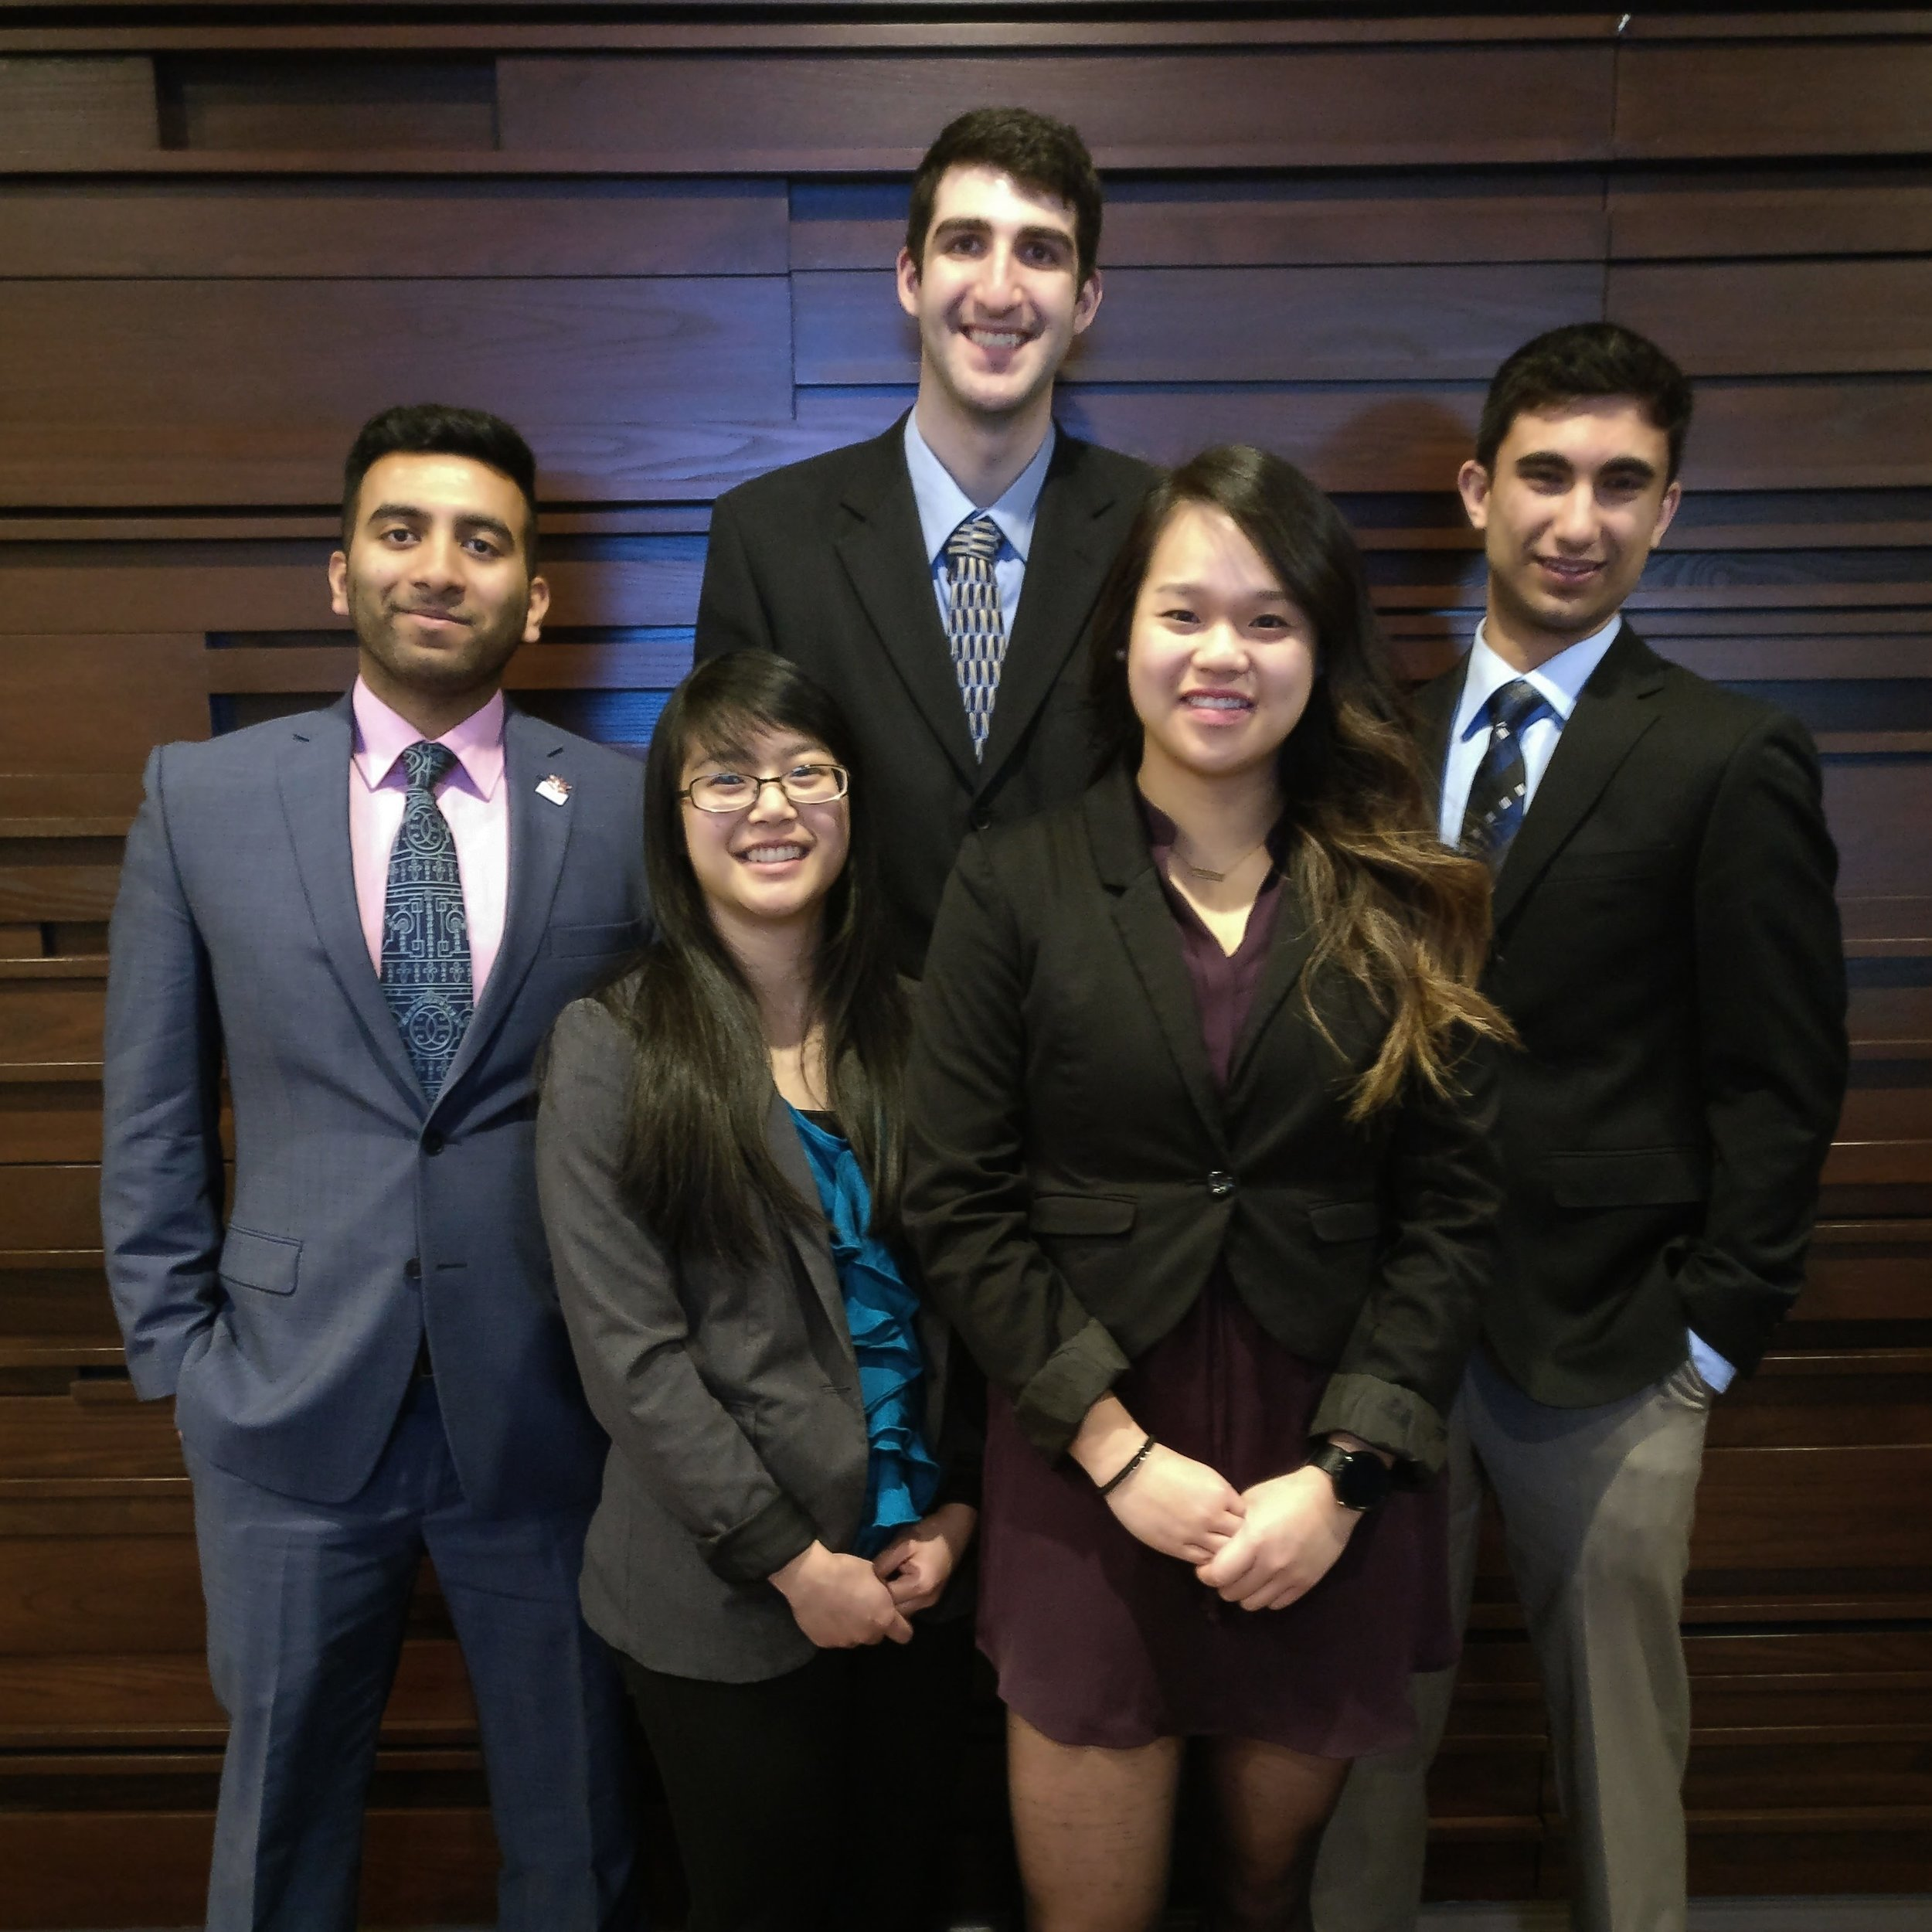 McMaster team members that attended the conference. From left to right, Farazdak, Chelsea, Eric, Erica, and Eric.